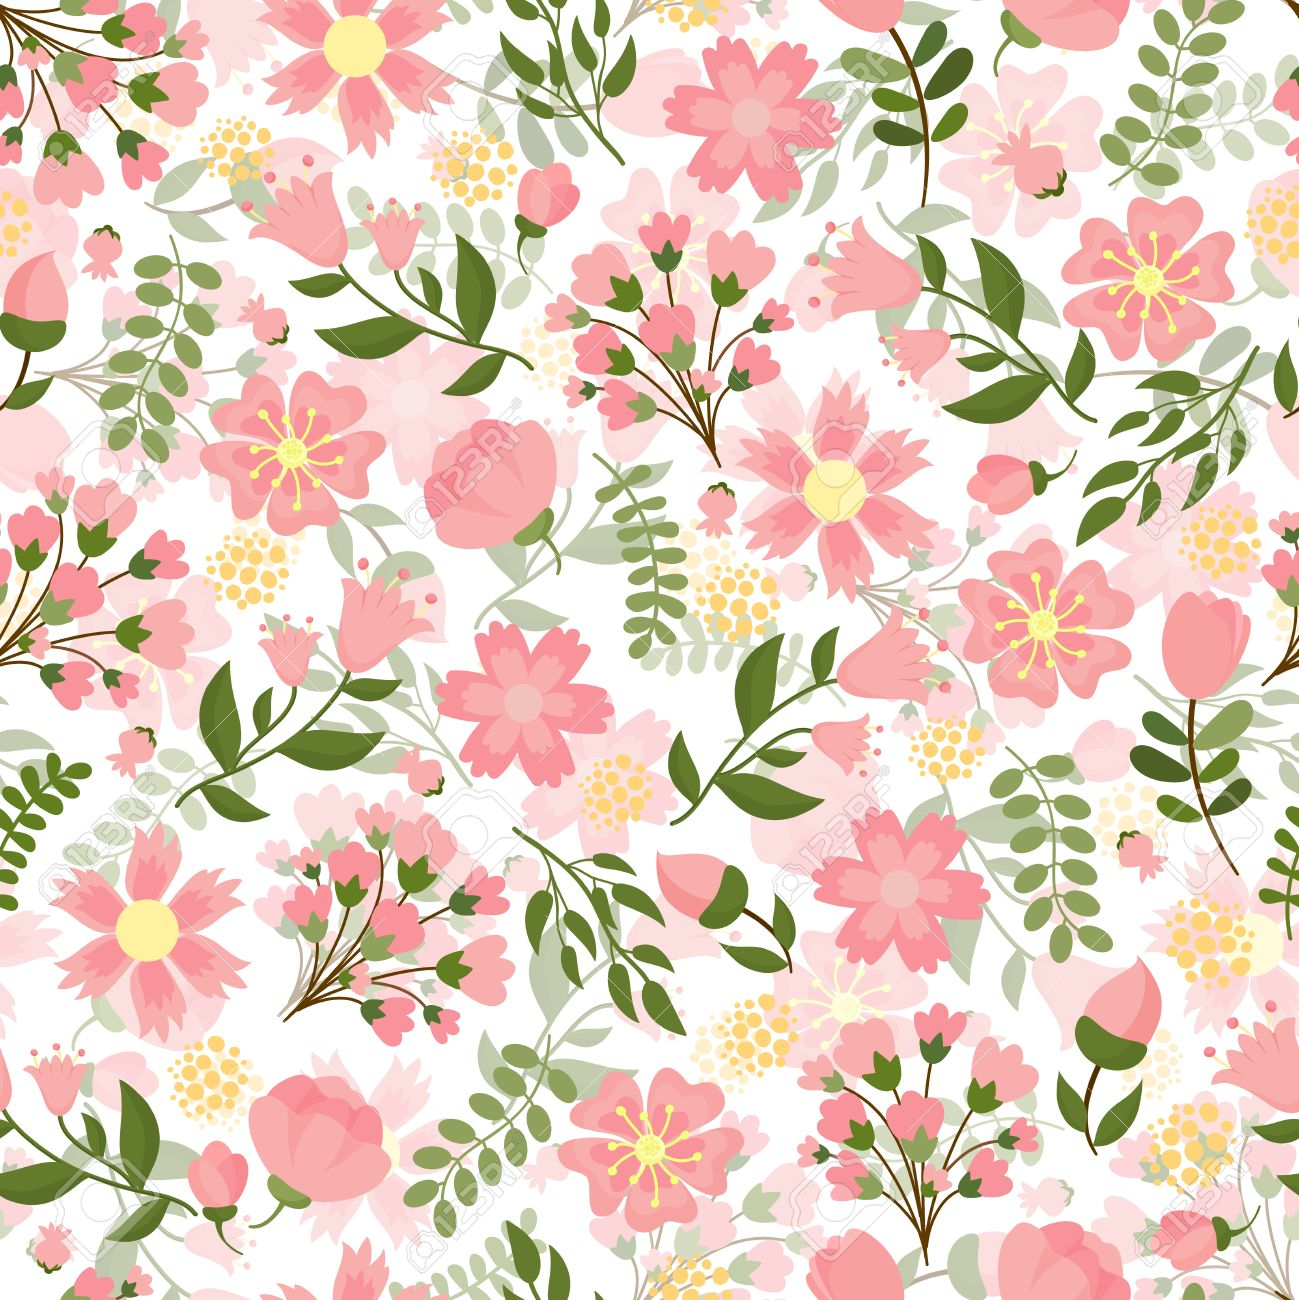 Seamless Spring Floral Background With A Dense Pattern Of Pretty